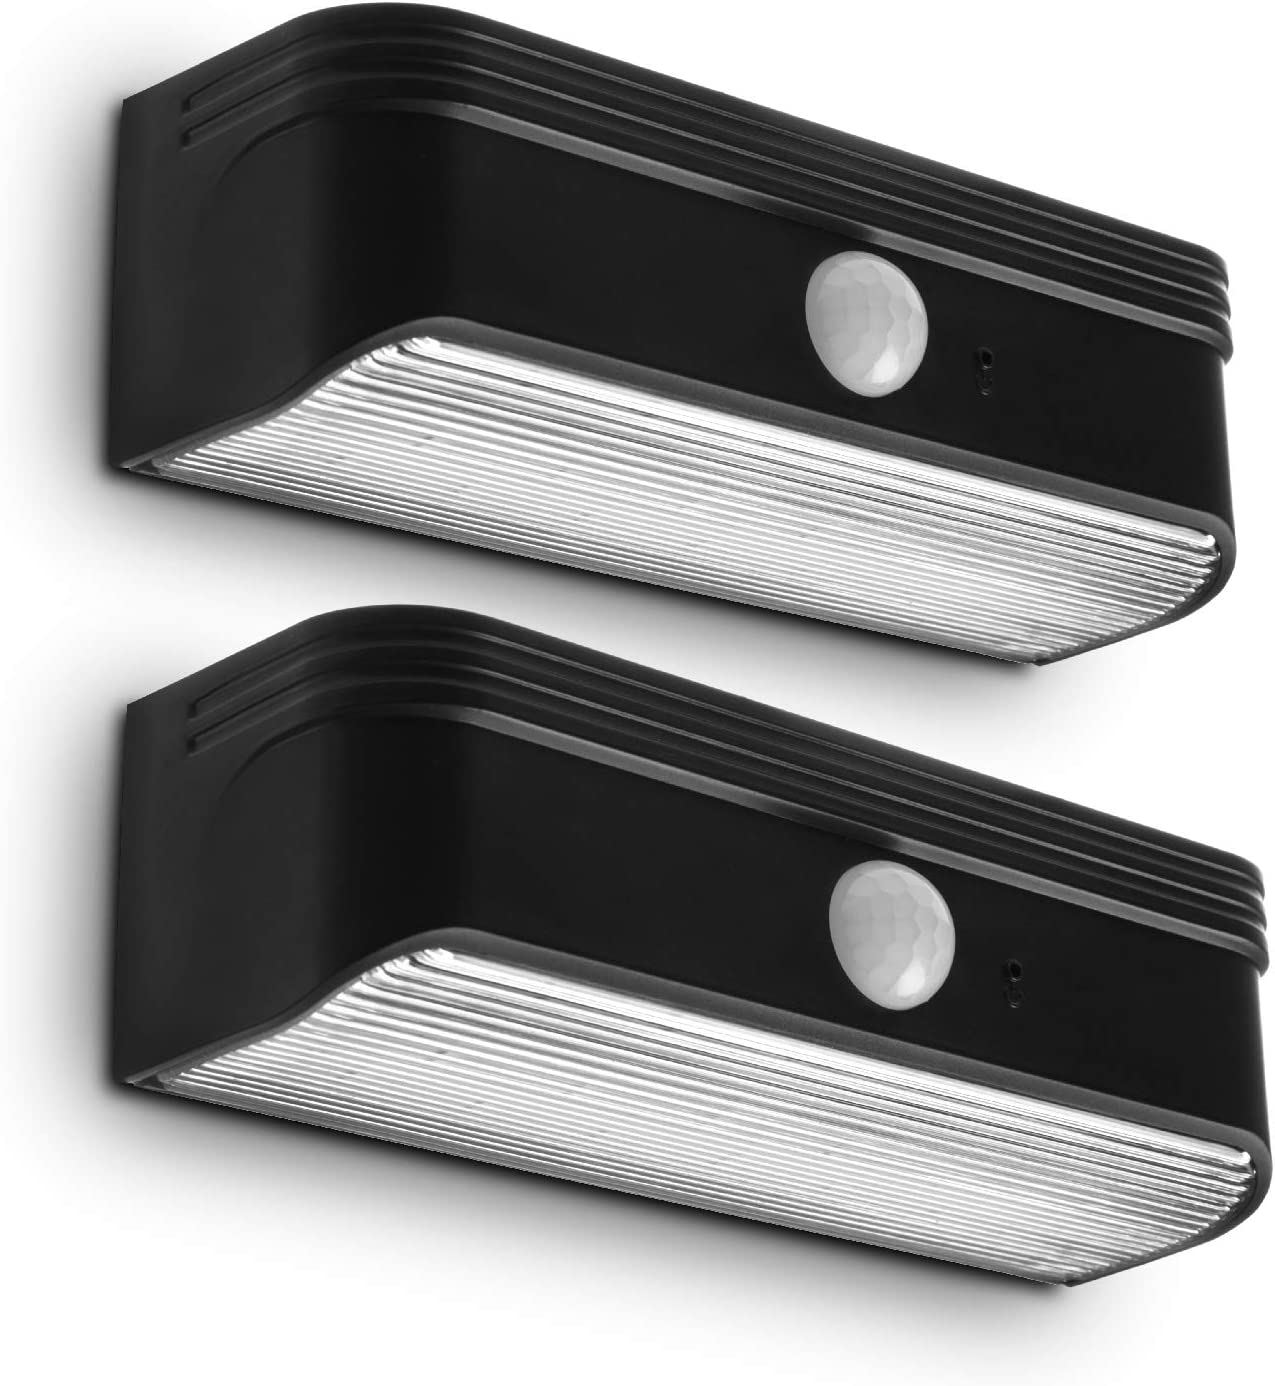 Home Zone Security Solar Step Lights - Motion Sensor LED Outdoor Deck and Step Lights with No Wiring Required, 2-Pack, Black (ELI0989V)